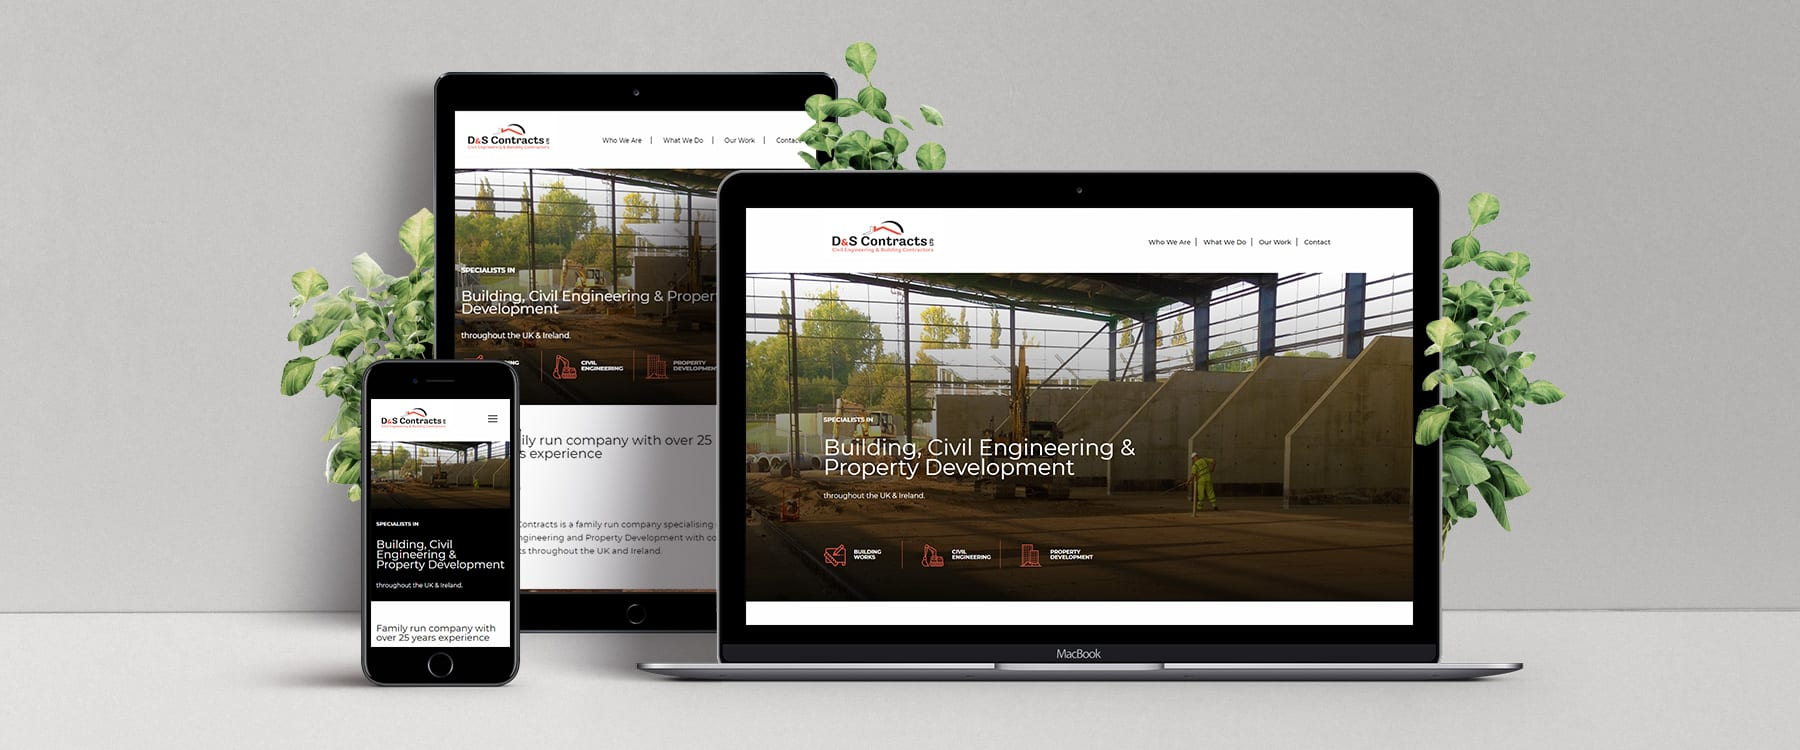 County Down Company, D & S Contracts Launch Brand New Brochure Website Image